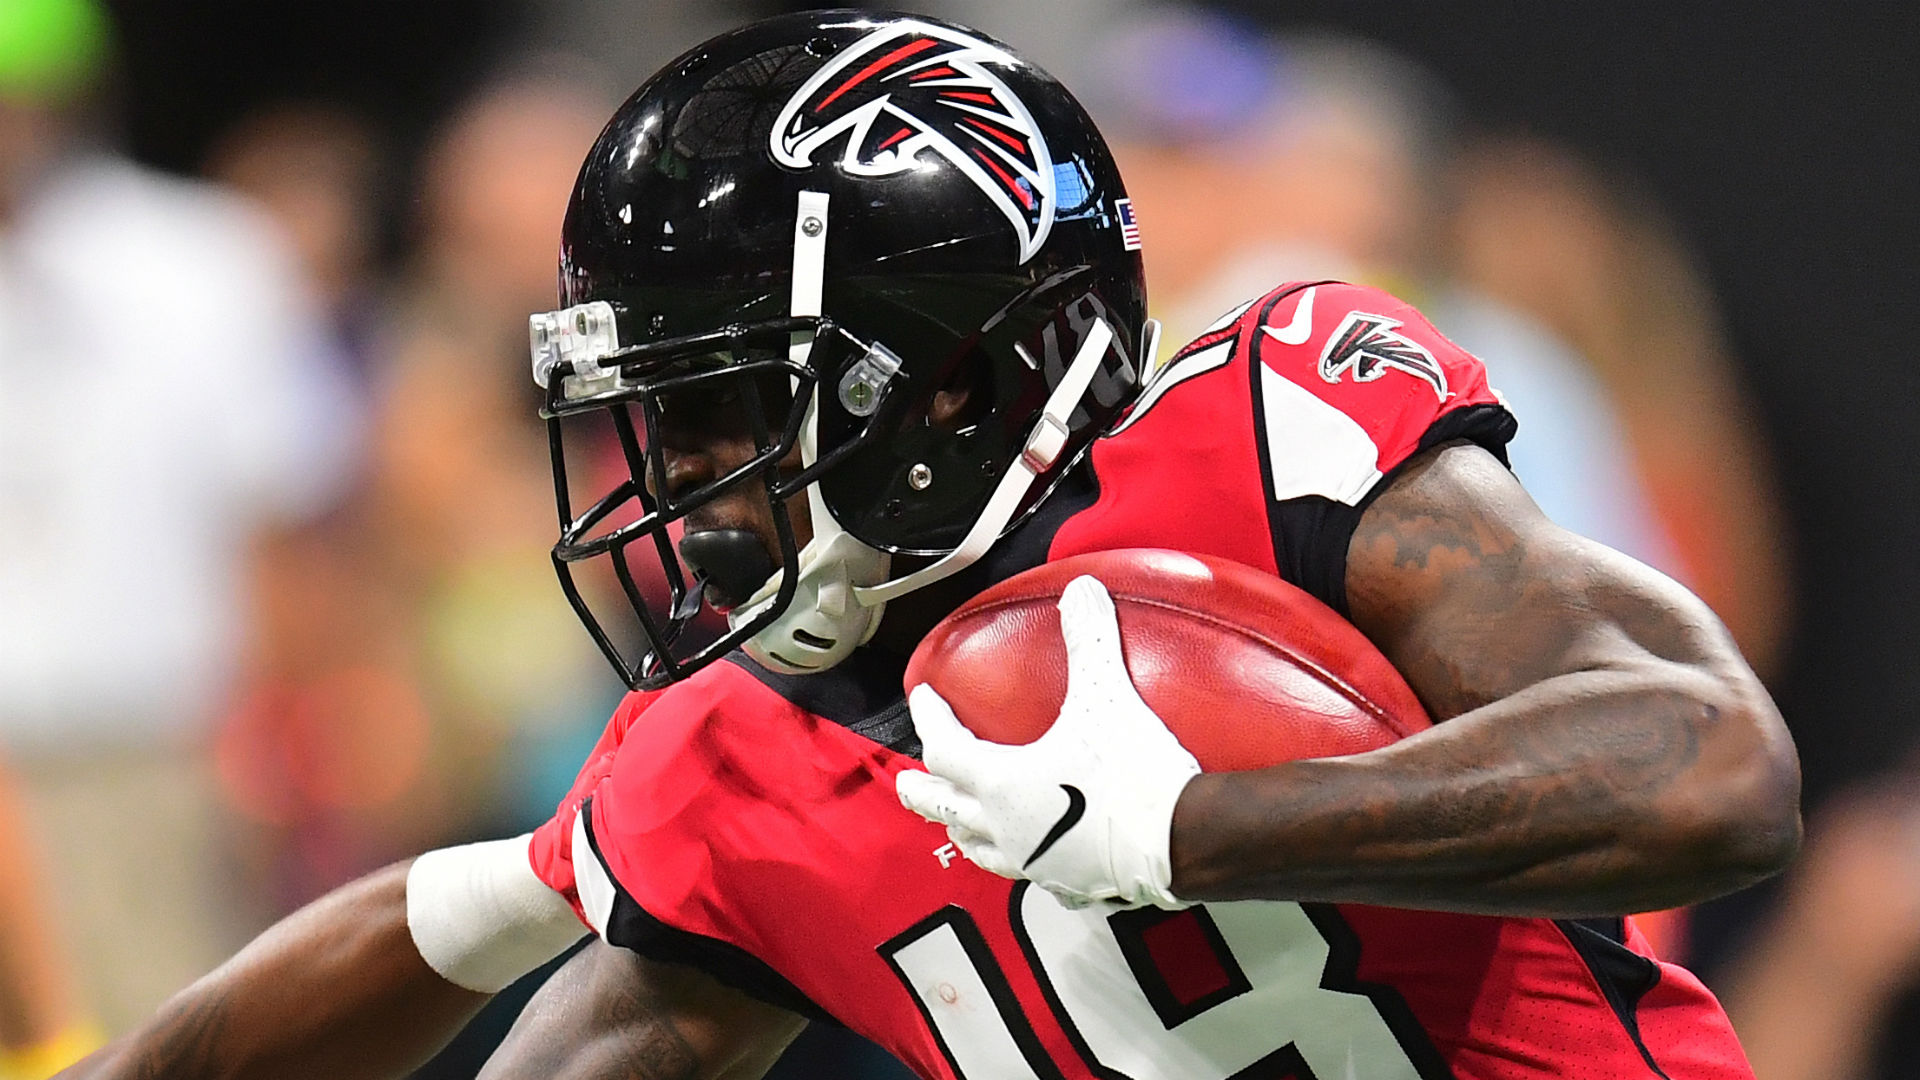 Waiver Wire Week 1 Wr Center Details About Ideal 61534 Digital Circuit Breaker Finder With Best Fantasy Football Pickups For 4 Sporting News Rh Sportingnews Com Top